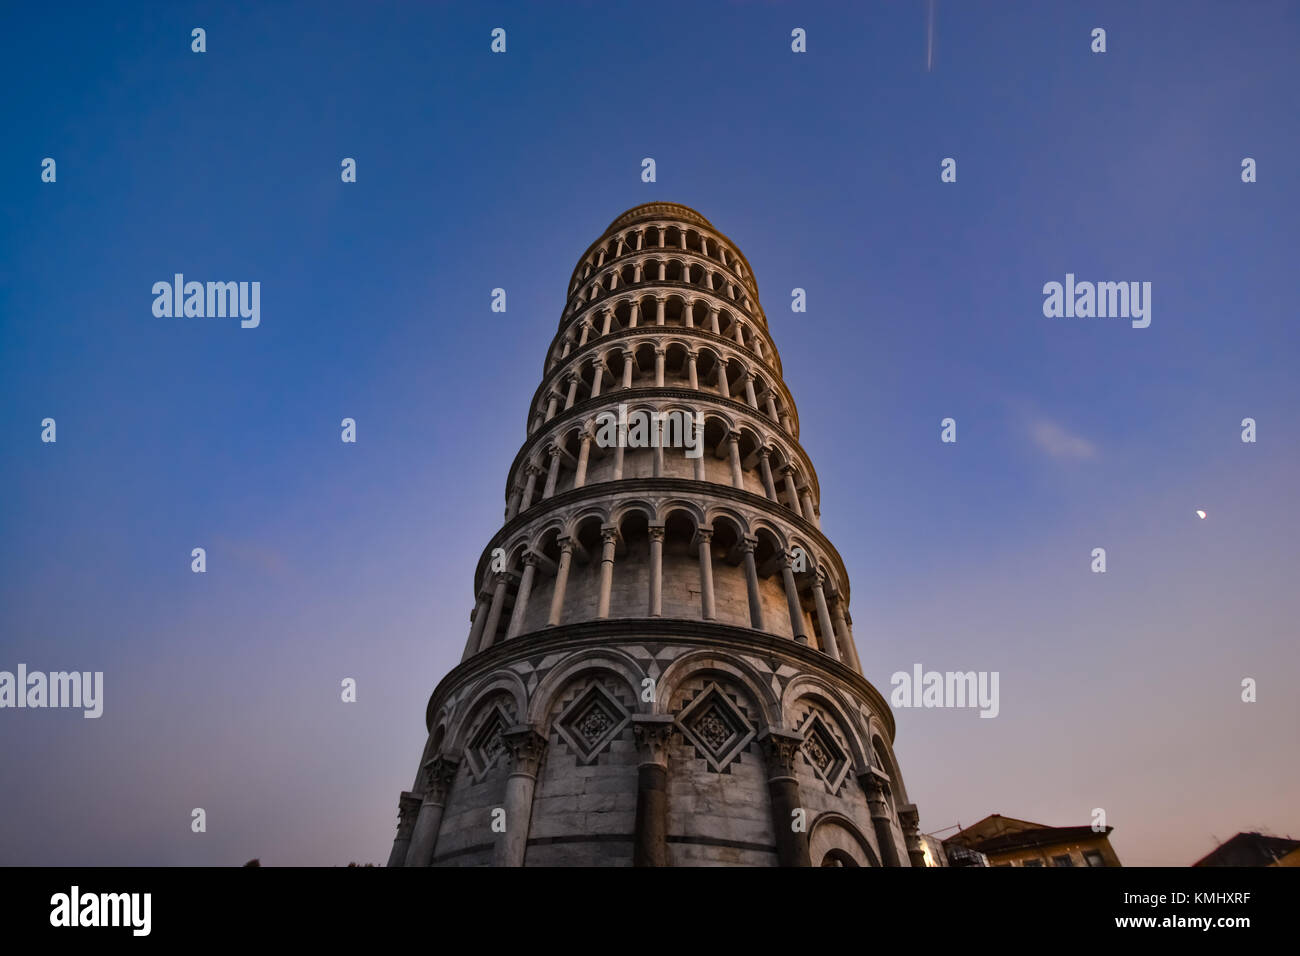 The leaning tower of Pisa Italy at the Piazza del Duomo as night falls. - Stock Image